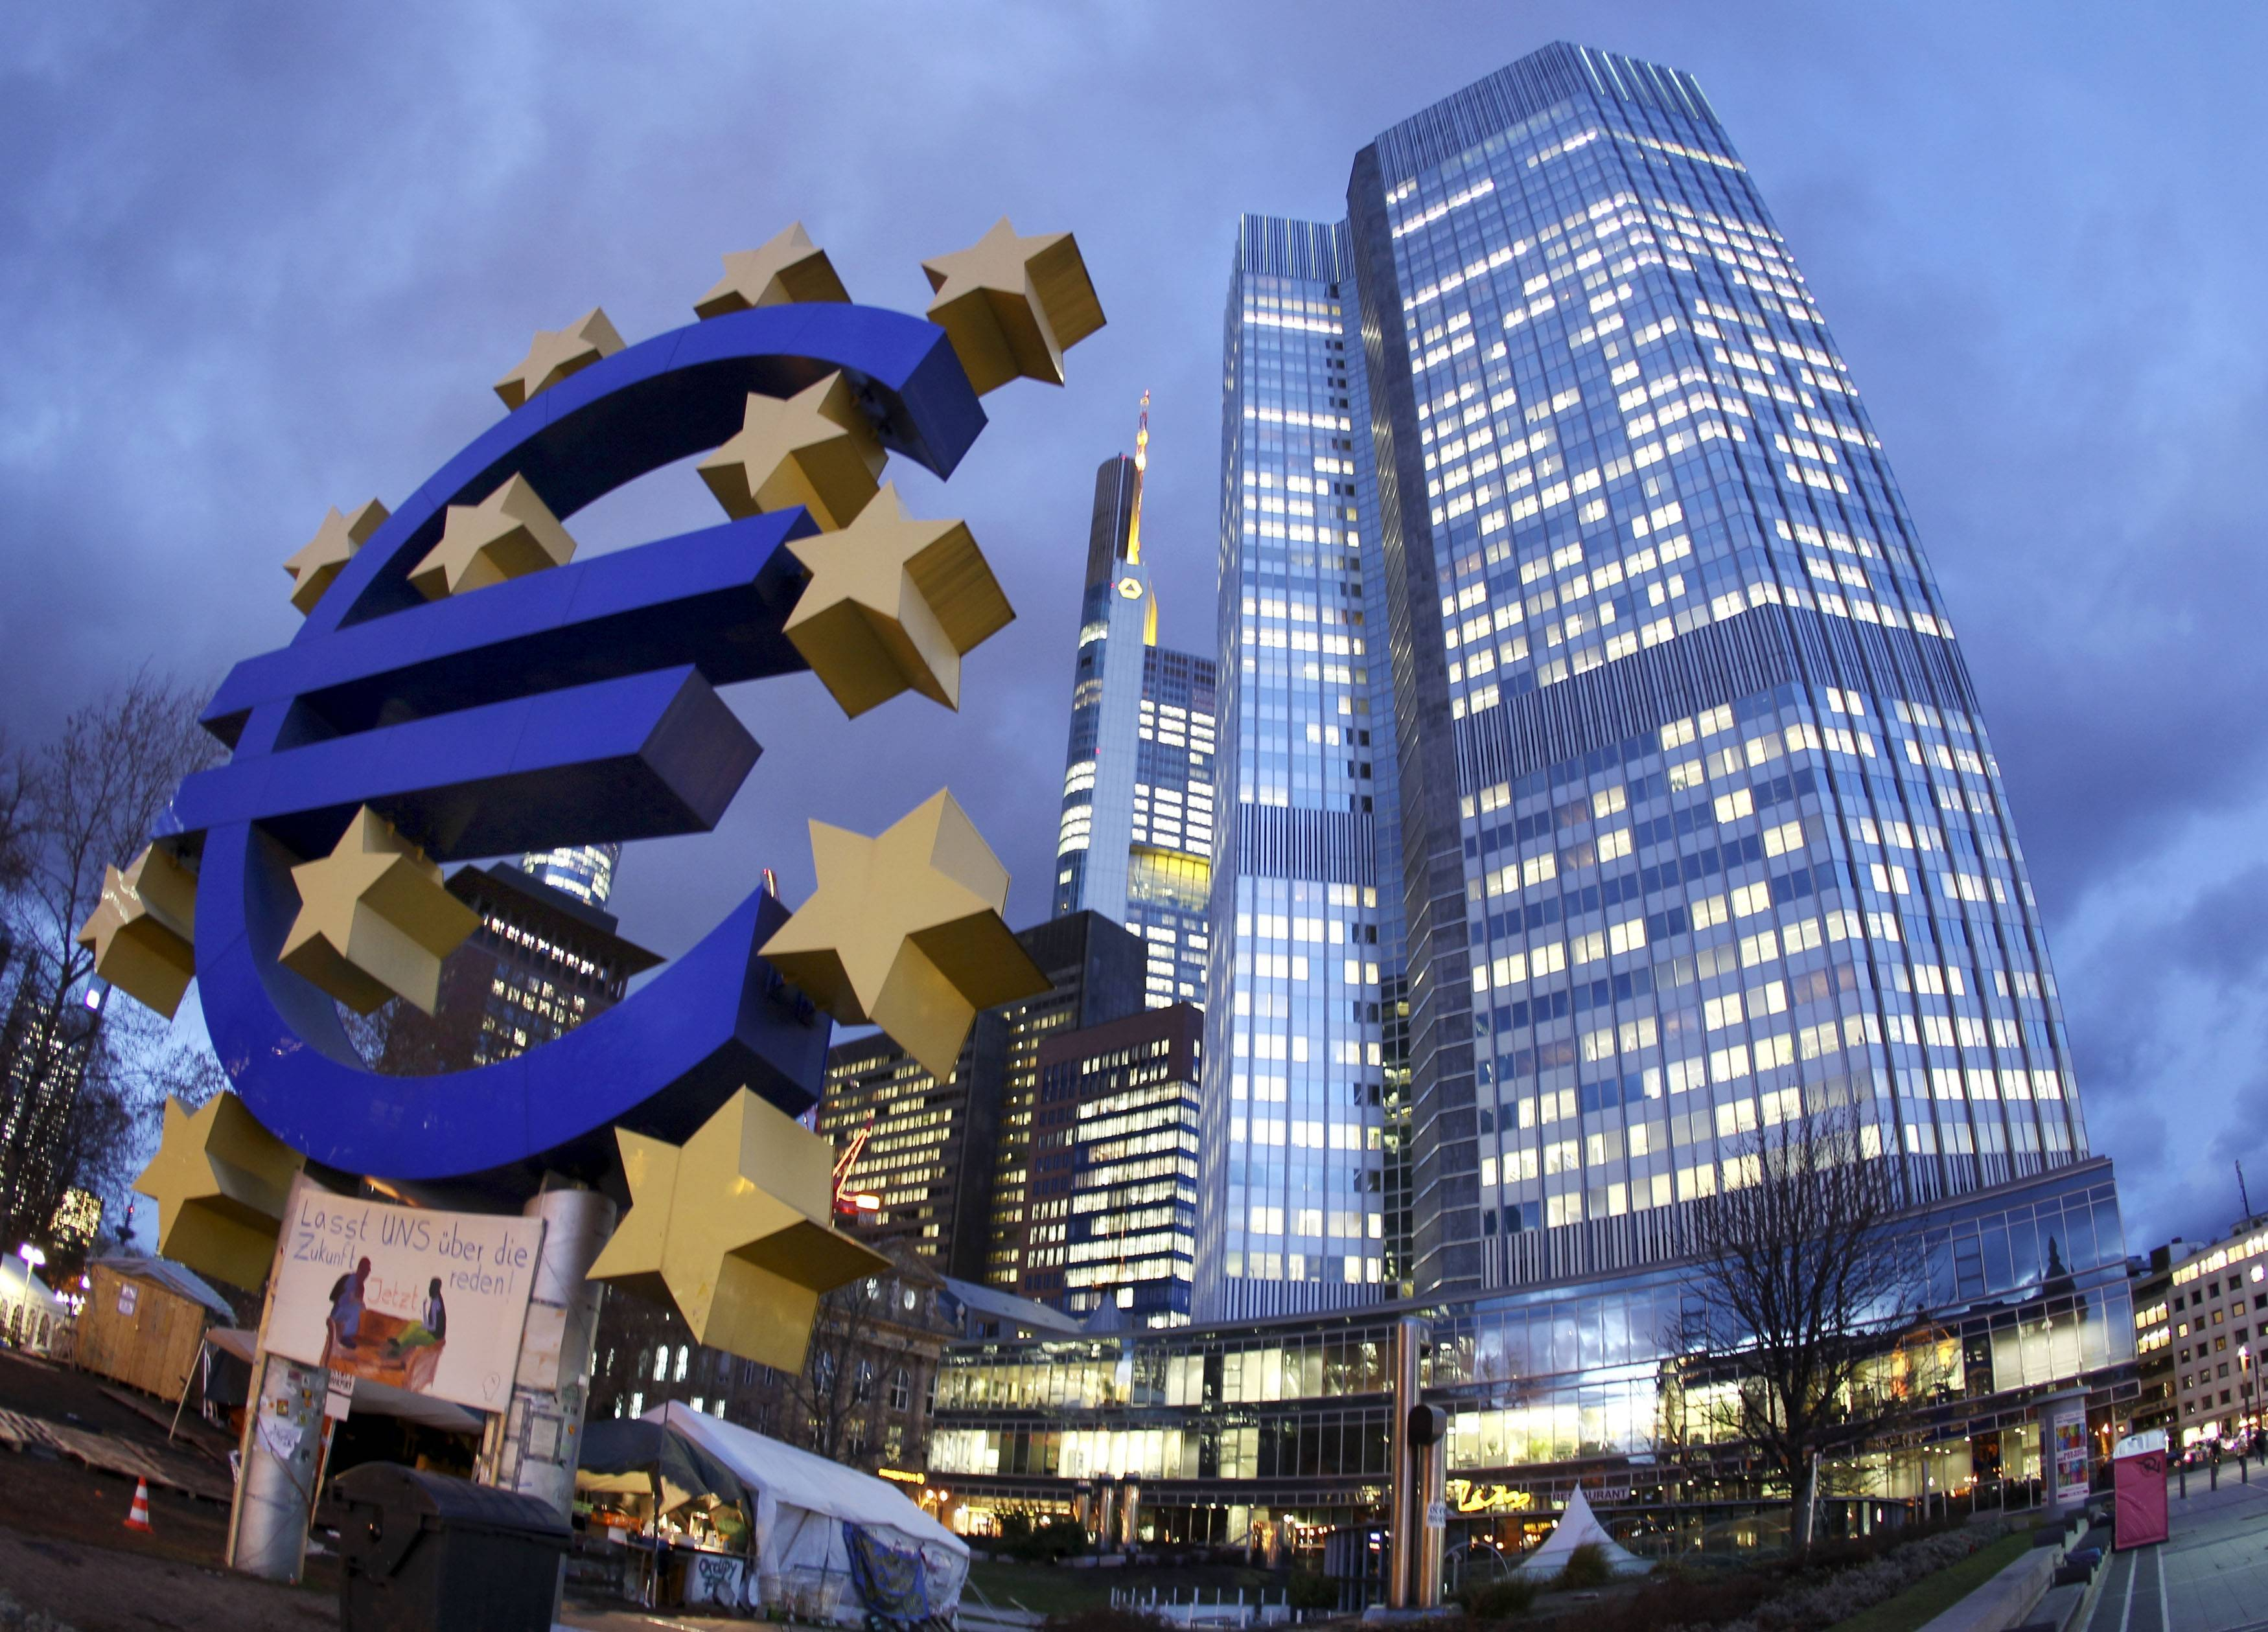 The Euro sculpture in front of the European Central Bank, right, in Frankfurt, Germany. The European Central Bank took bold steps Thursday to protect Europe's fragile economic recovery, cutting interest rates and offering to pump more money into the financial system.